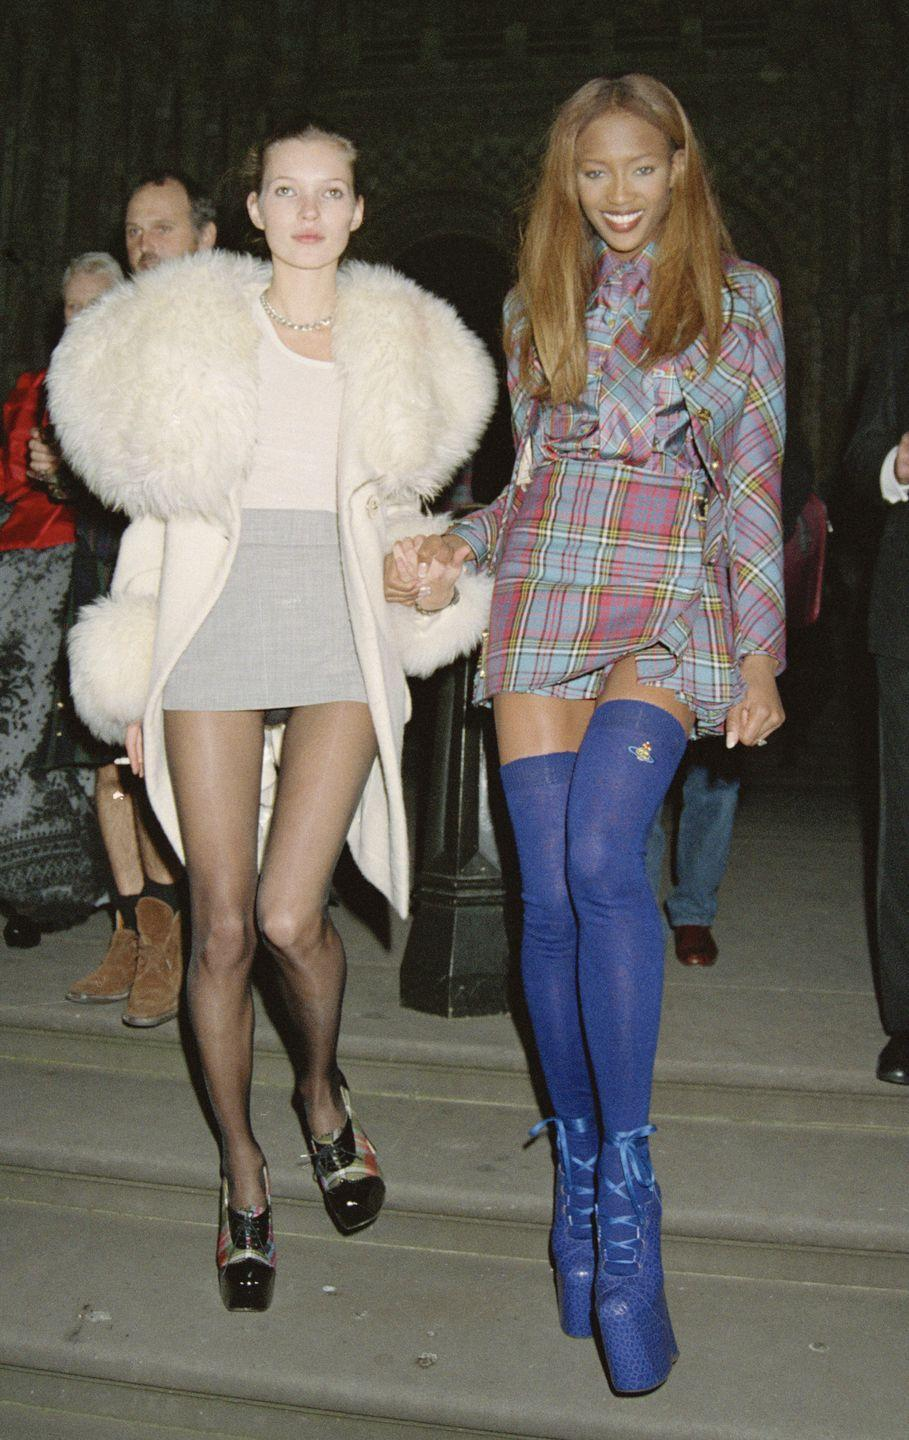 <p>The supermodel era of the '90s featured Naomi Campbell as a main character among the group. Her English charm and confidence is what made her an unforgettable staple of the decade and a continuing star today.</p>